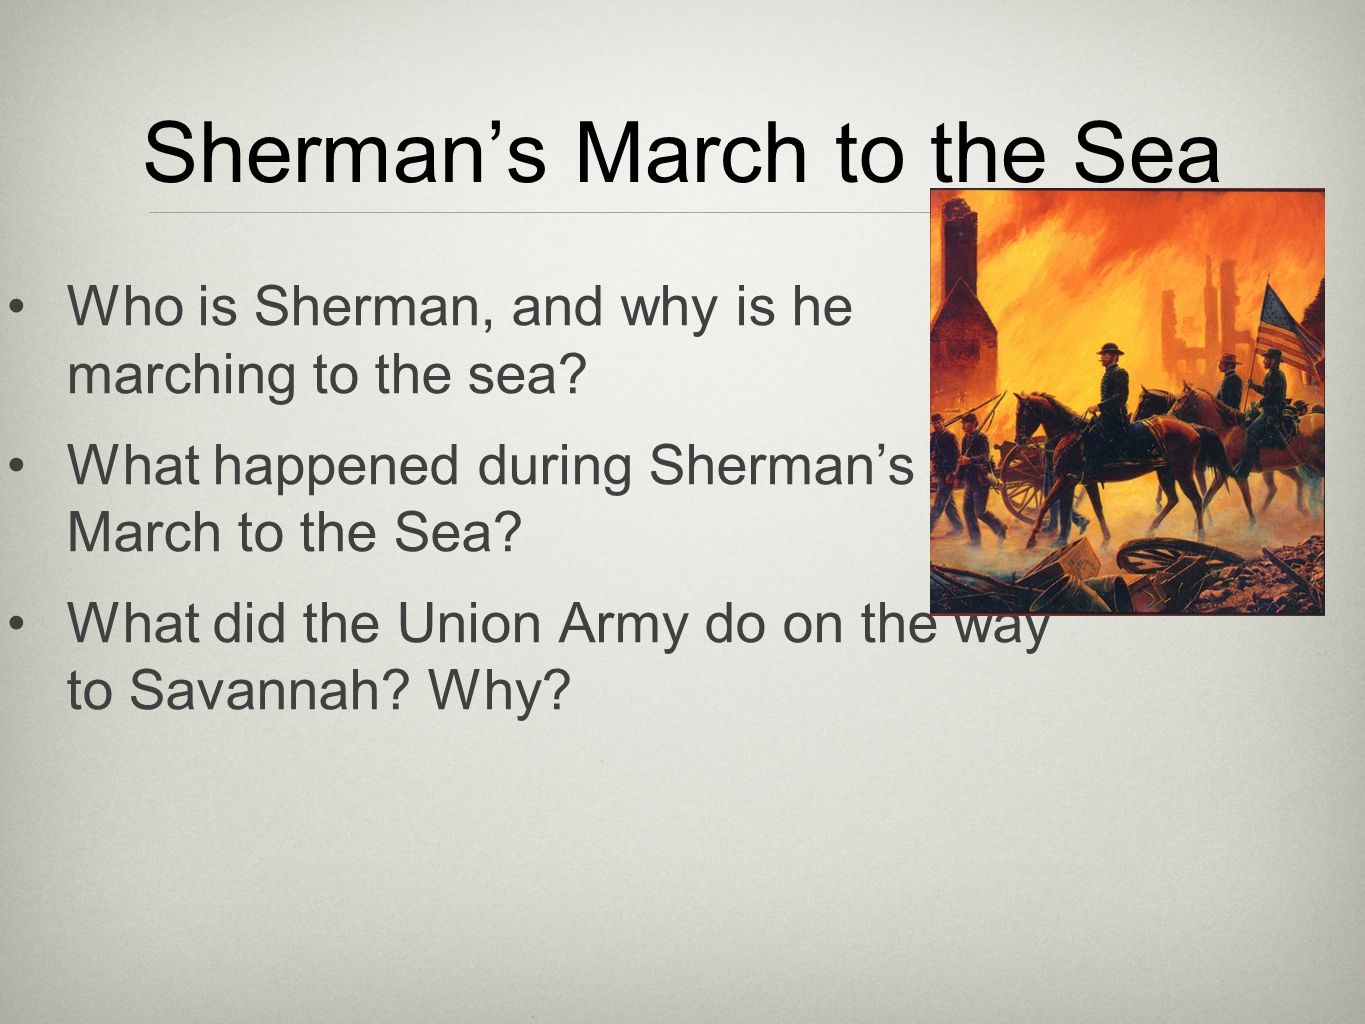 Who is Sherman, and why is he marching to the sea? What happened during Shermans March to the Sea? What did the Union Army do on the way to Savannah?